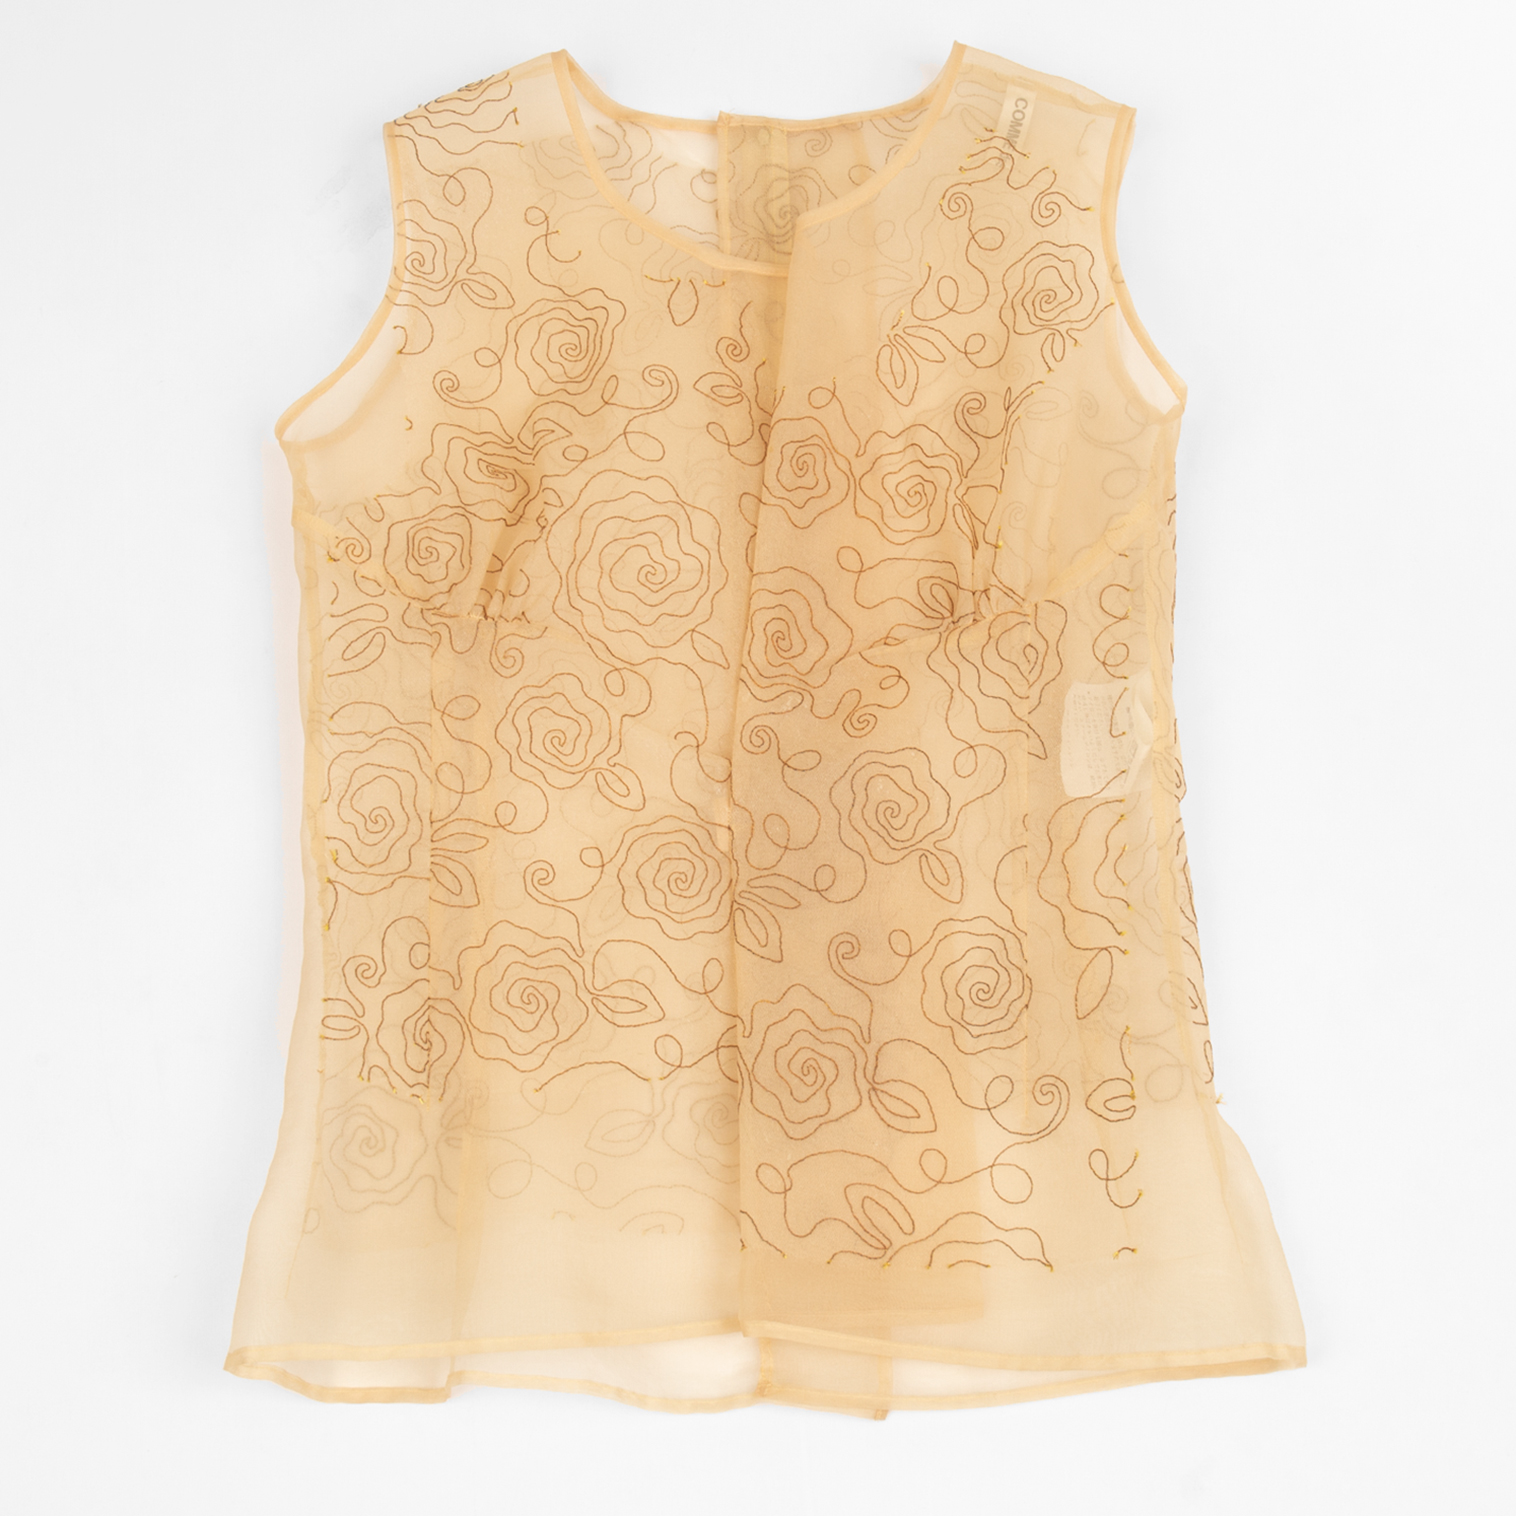 AD1997 COMME des GARCONS Embroideried See-through Vest